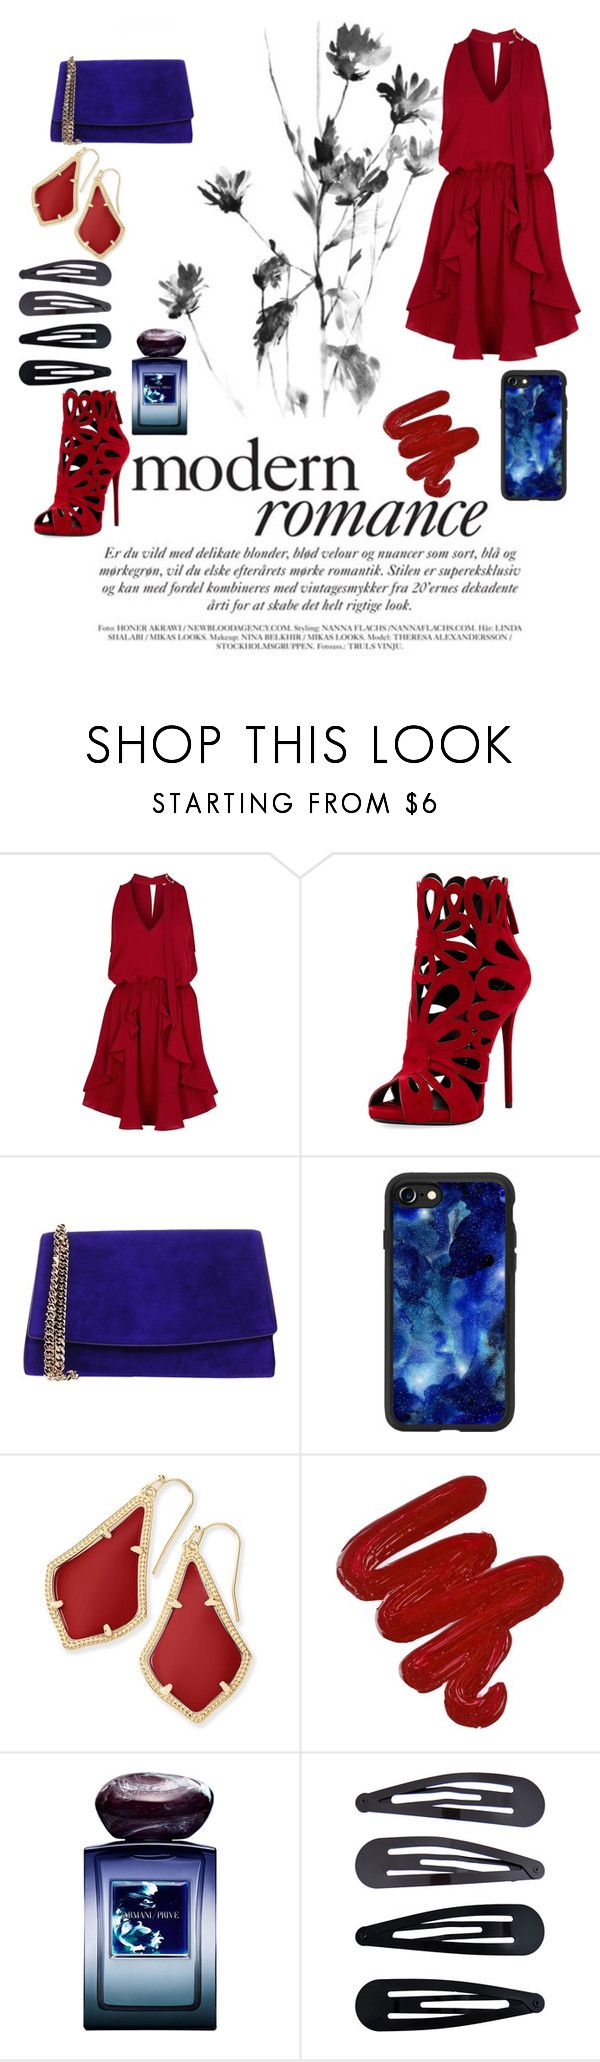 """""""fit3"""" by rinashawn ❤ liked on Polyvore featuring Finders Keepers, Giuseppe Zanotti, Sergio Rossi, Casetify, Kendra Scott, Obsessive Compulsive Cosmetics, Giorgio Armani and Accessorize"""